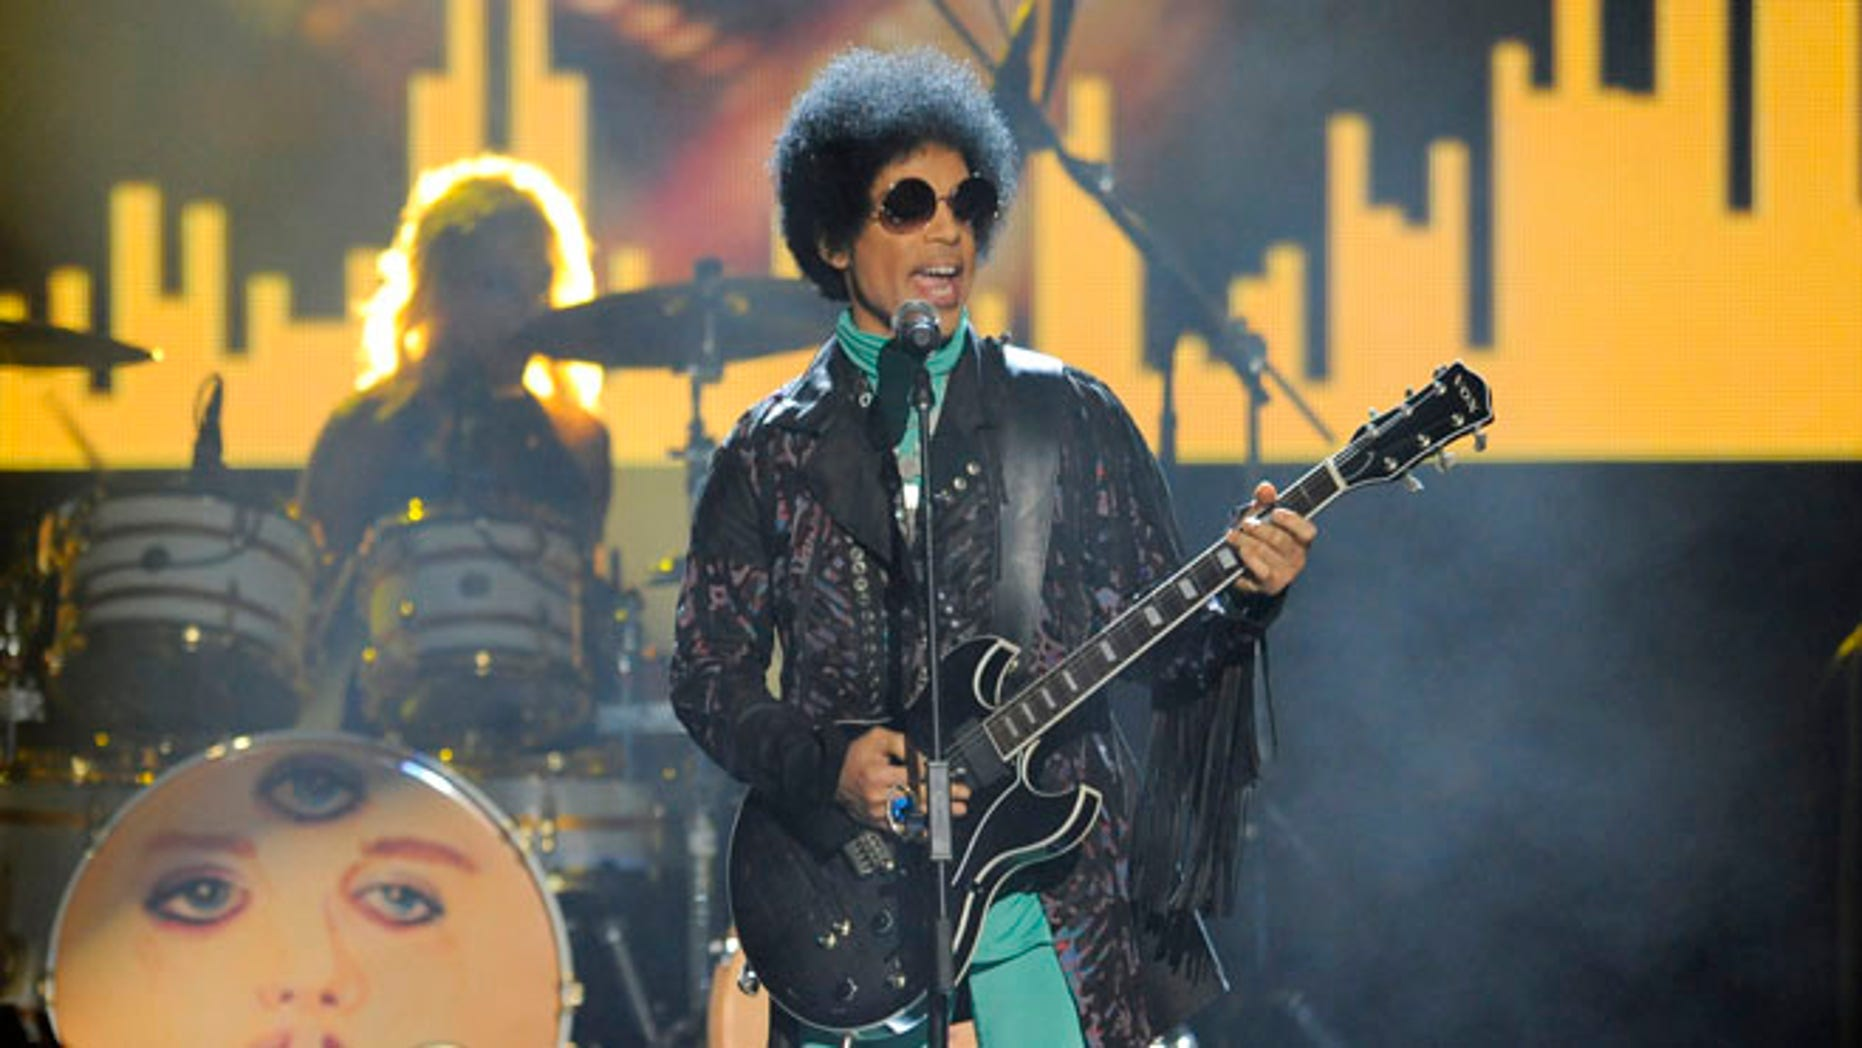 Prince had been in discussions with Netflix about a reality show before he died in April.